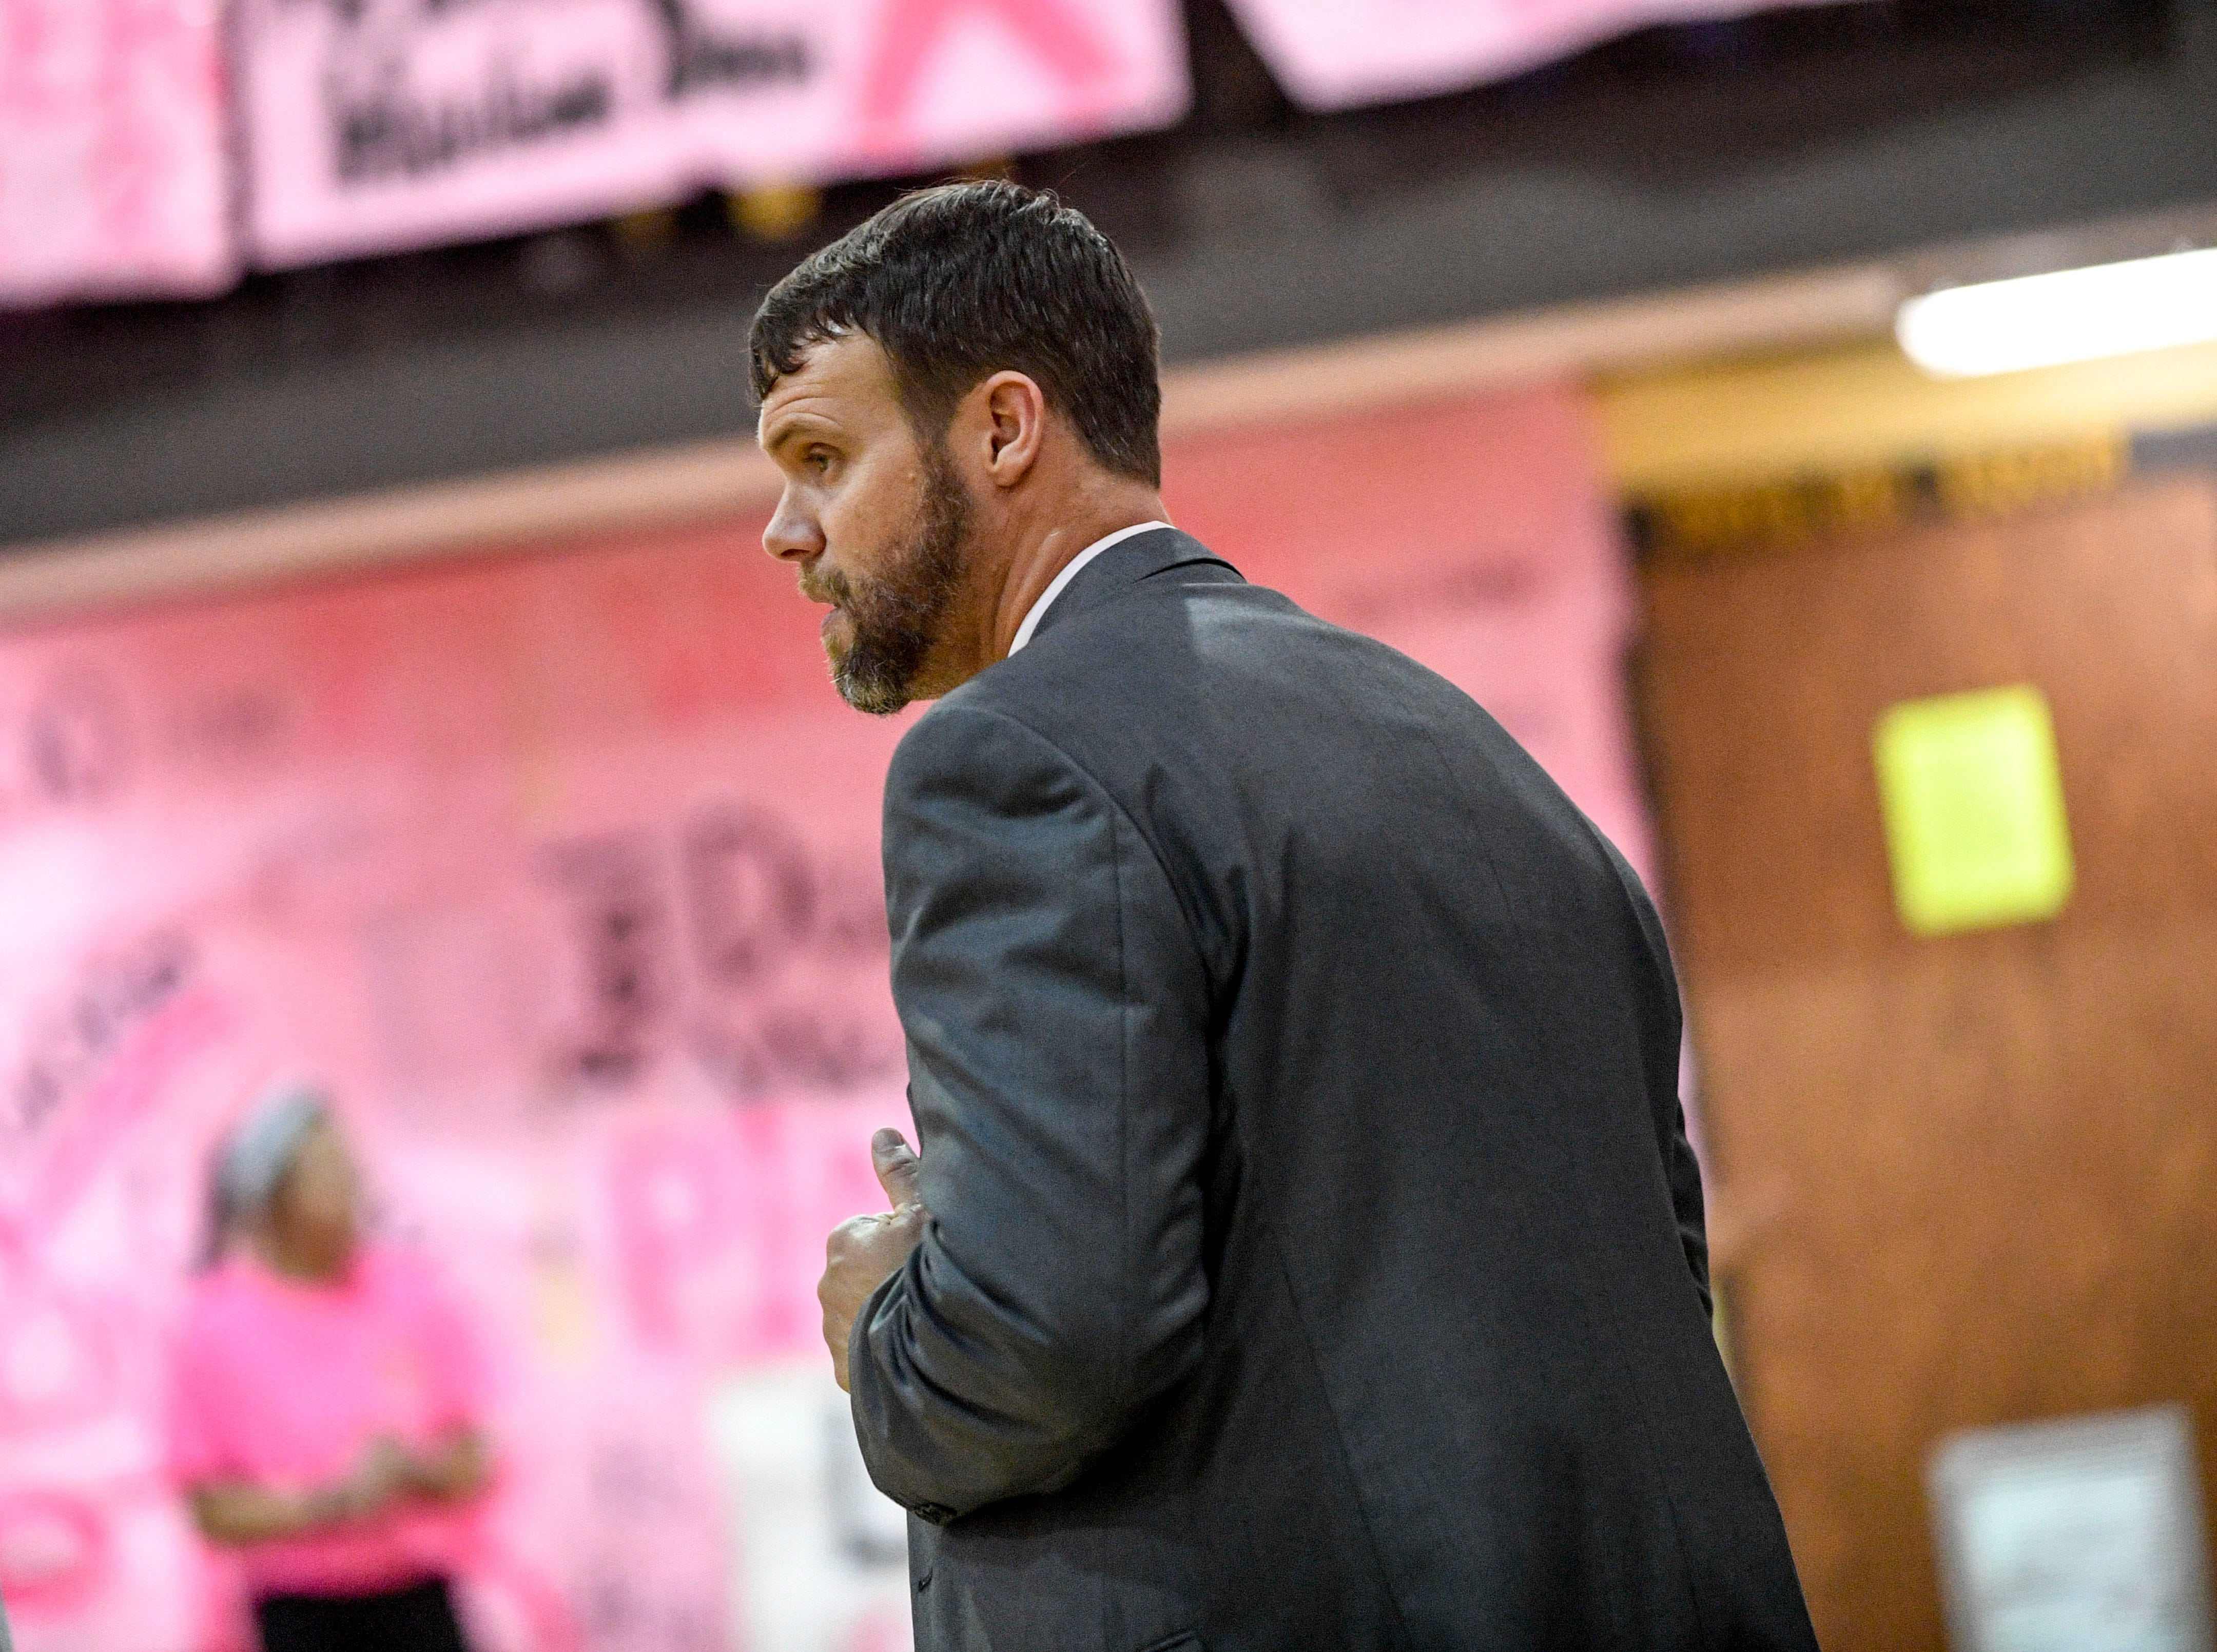 Peabody head coach Miller walks the sideline of his players in a TSSAA basketball game between Peabody and Gibson County at Peabody High School in Trenton, Tenn., on Friday, Feb. 8, 2019.